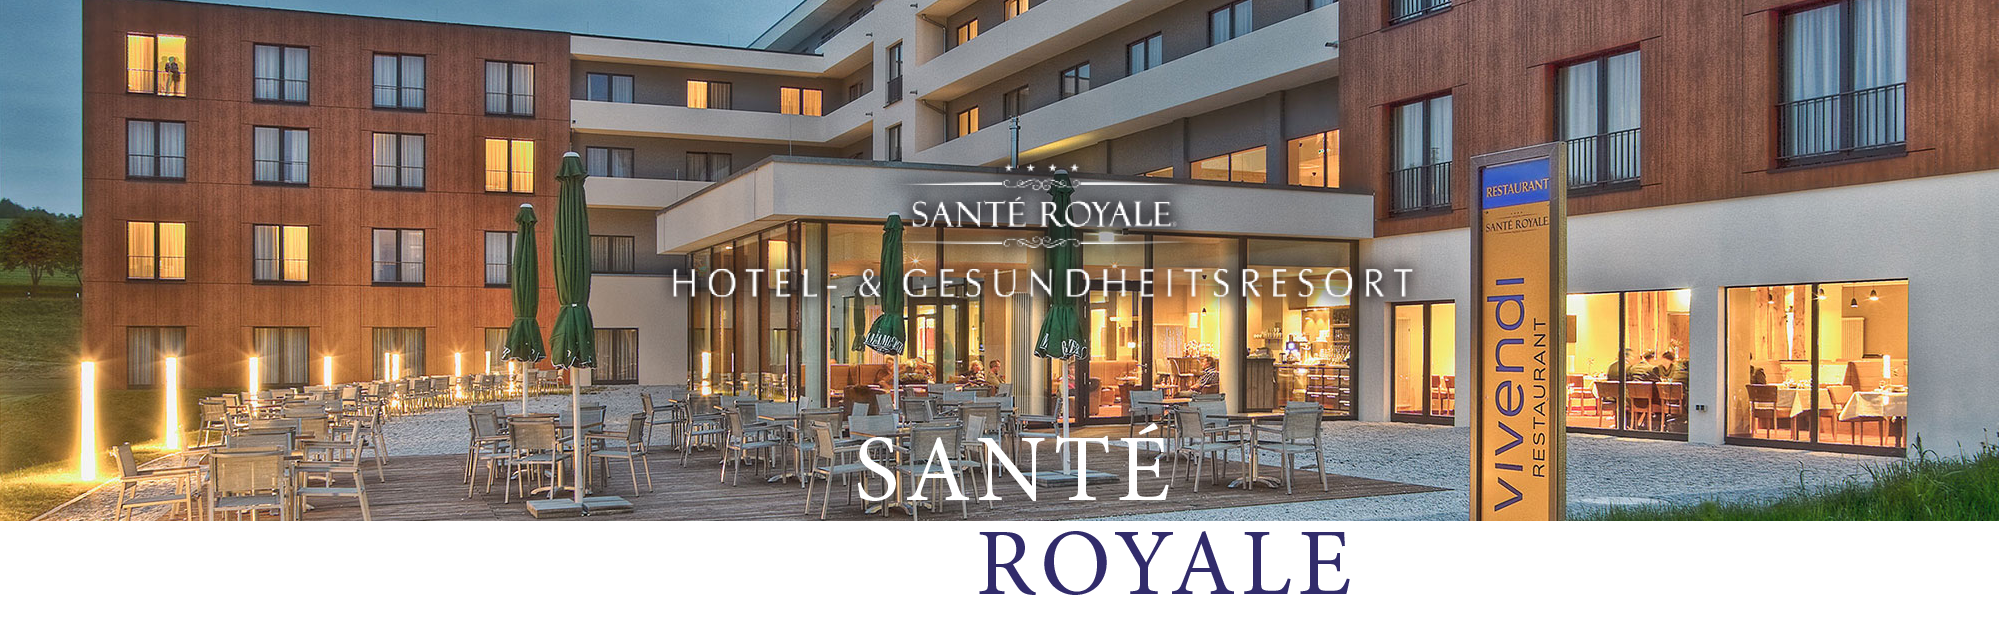 Hotels Sante Royale